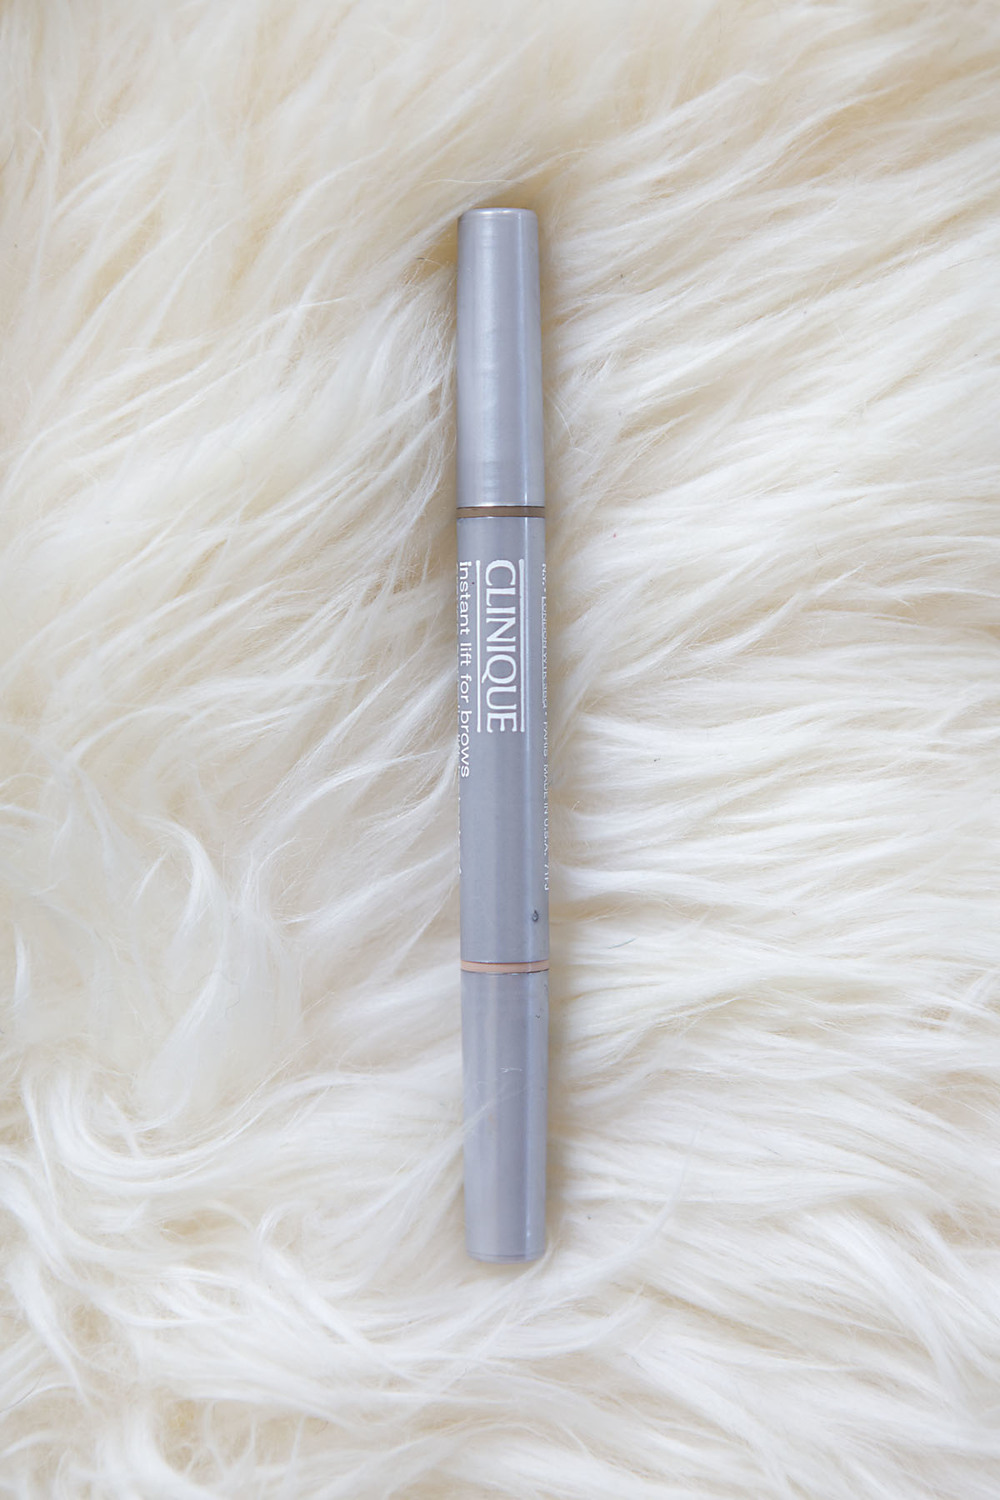 I'm a believer that your brows completely transform your face, and I'm the biggest proponent of thick brows. Unfortunately, mother nature hasn't given me those... So I turn to Clinique's Instant Lift For Brows. It's a great middle ground between a pencil and a crayon and fills in your brows naturally and beautifully. It also has a highlighter on the opposite end which I use on my brow bone and my cheek bones... Because who doesn't want an instant brow and face lift!? Find it  HERE  (for reference, my color is 01 Soft Blonde)